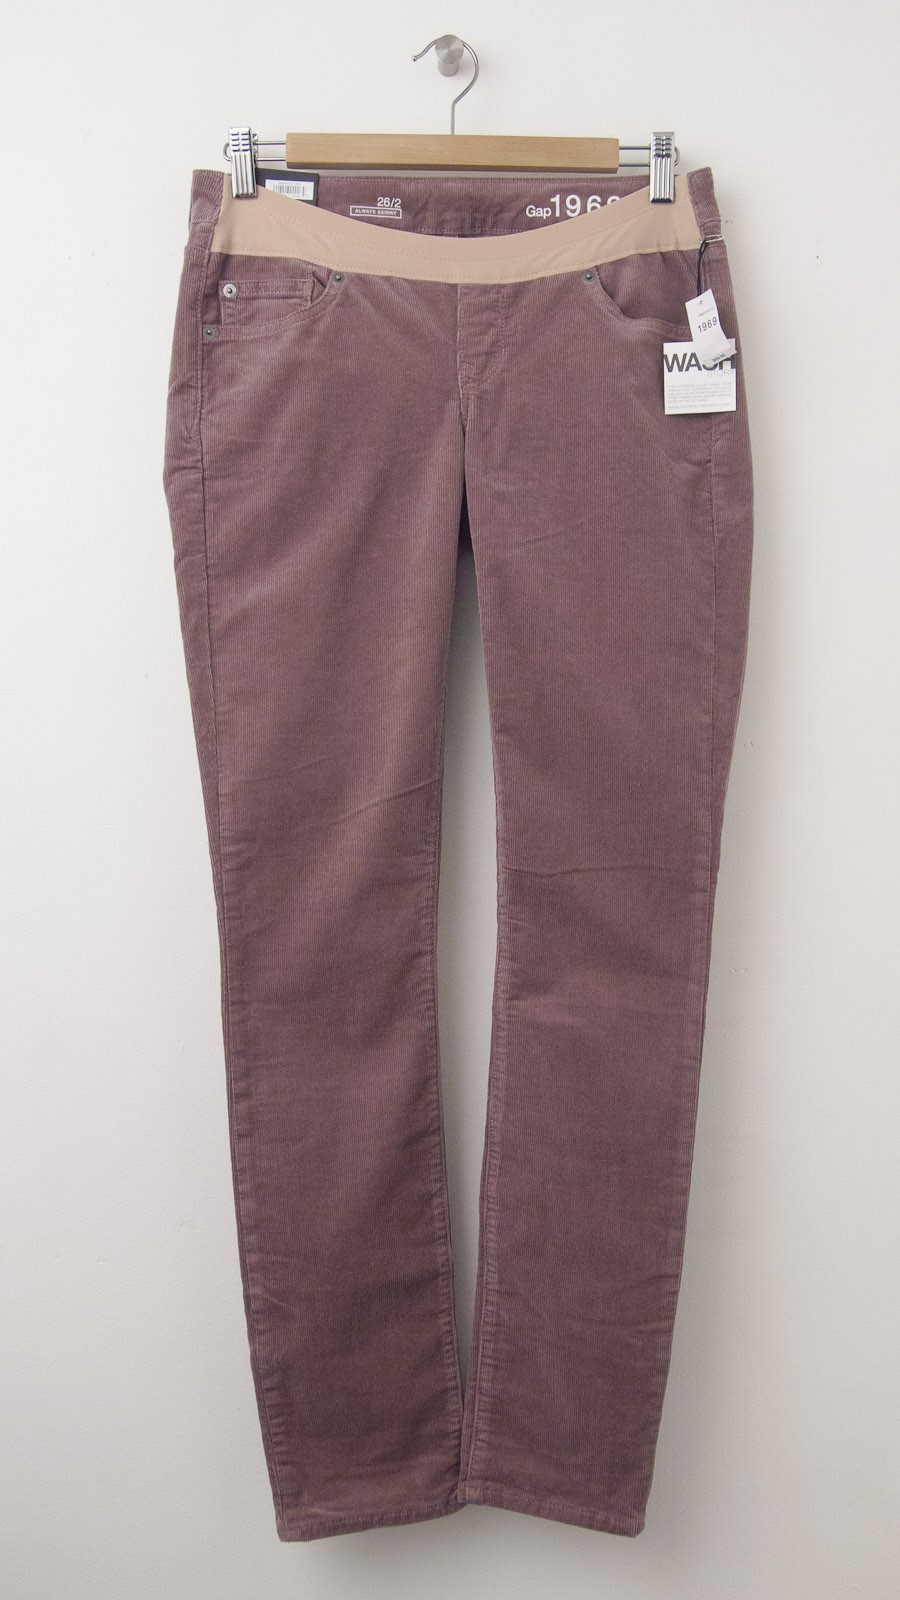 NEW Gap 1969 Ultimate Panel Always Skinny Cords Maternity Pants in Fig